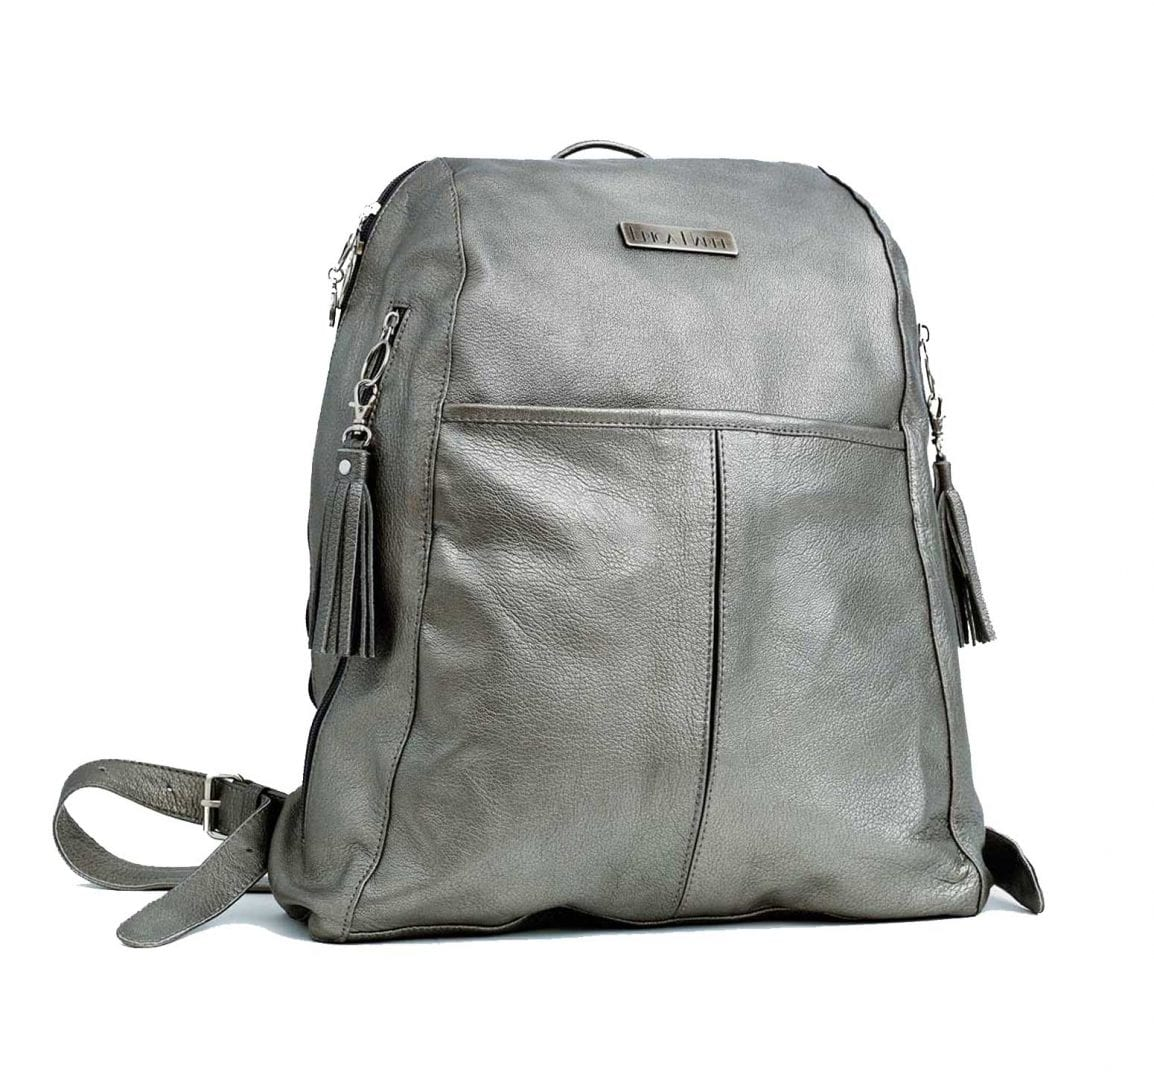 soft silver leather backpack